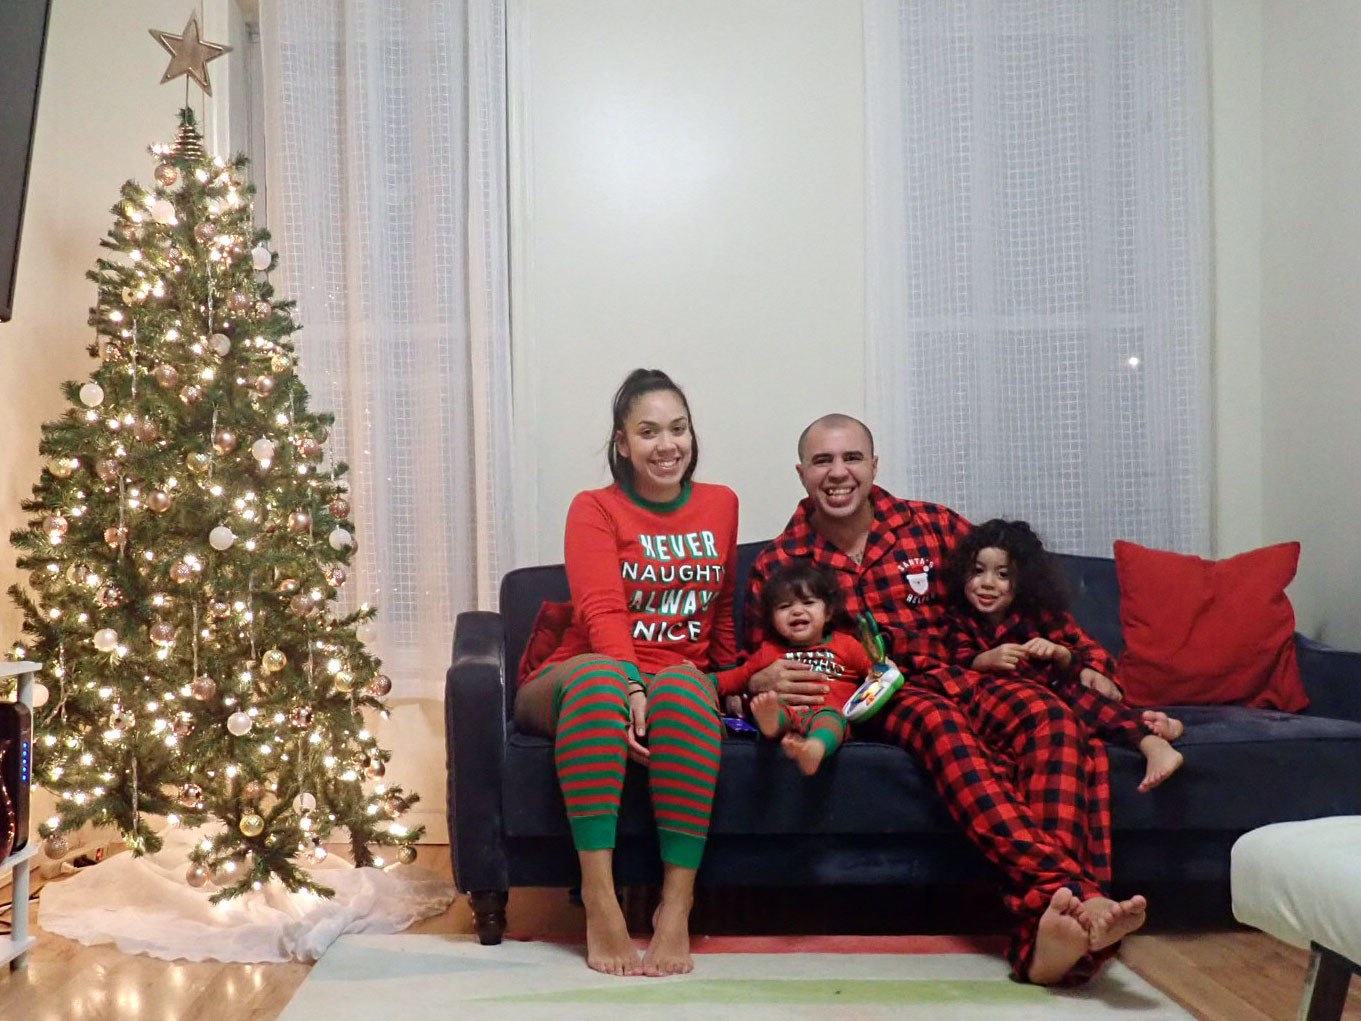 Family Matching Christmas Pajamas.jpg